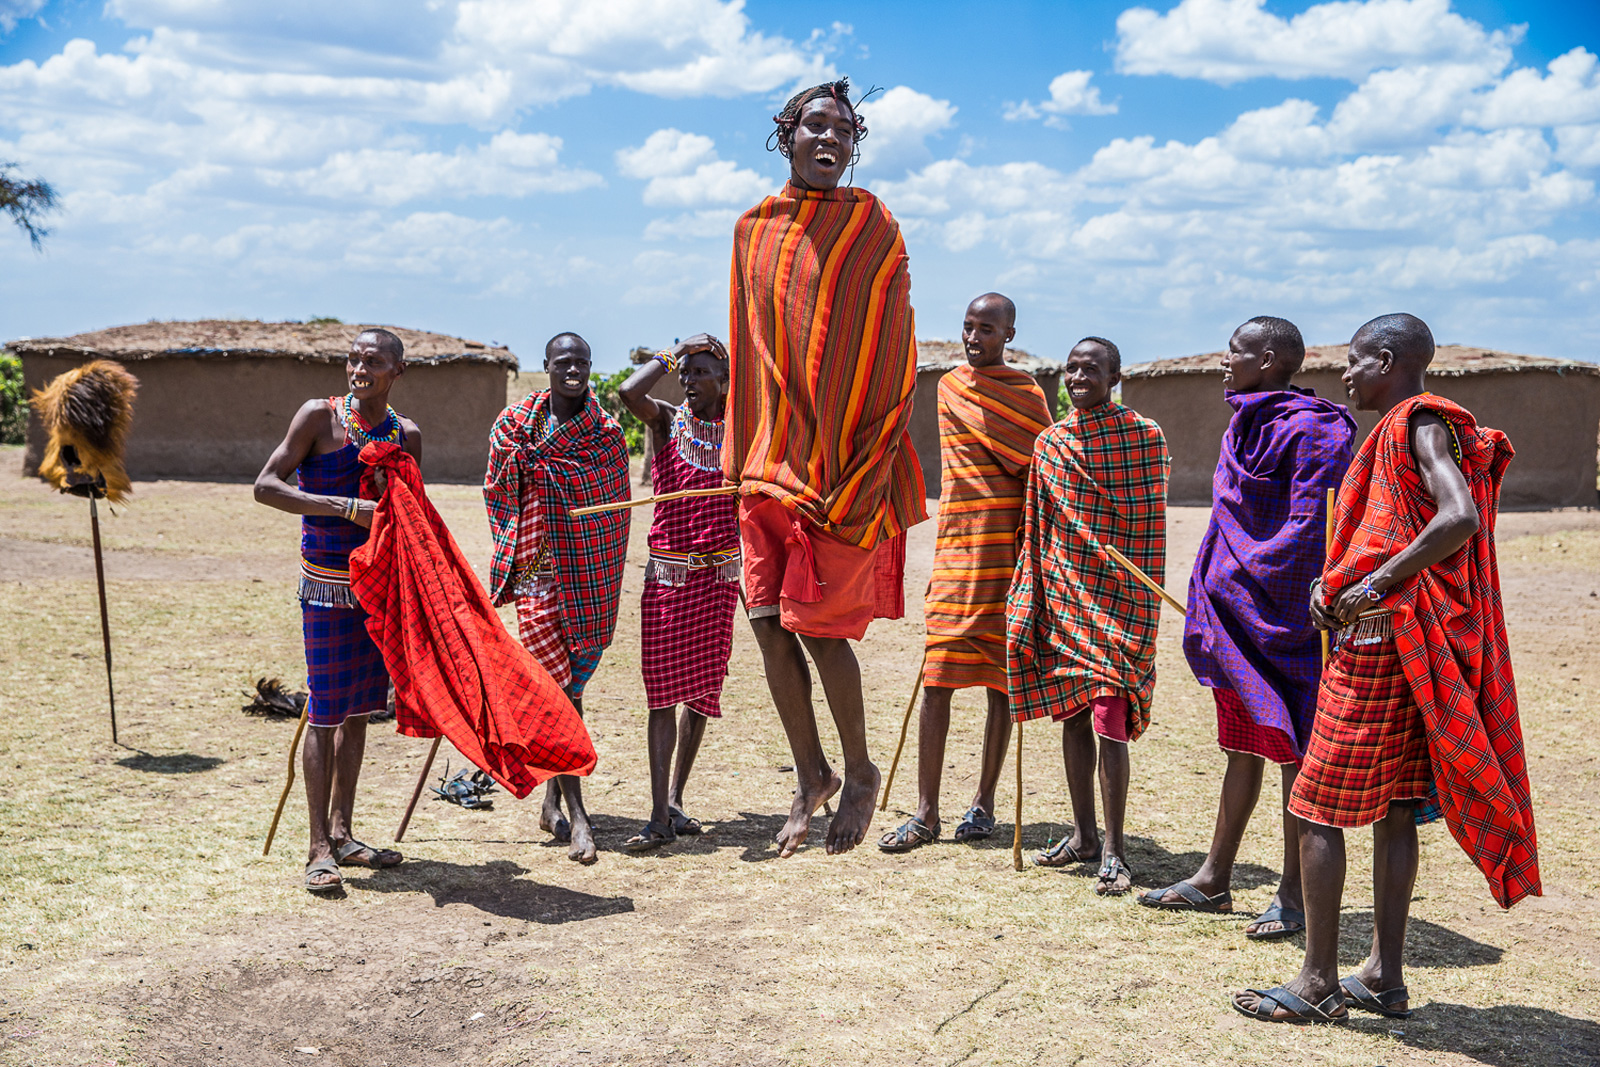 Maasai warriors perform their famous jumping dance in Maasai Mara, Kenya ©Kim Roslev